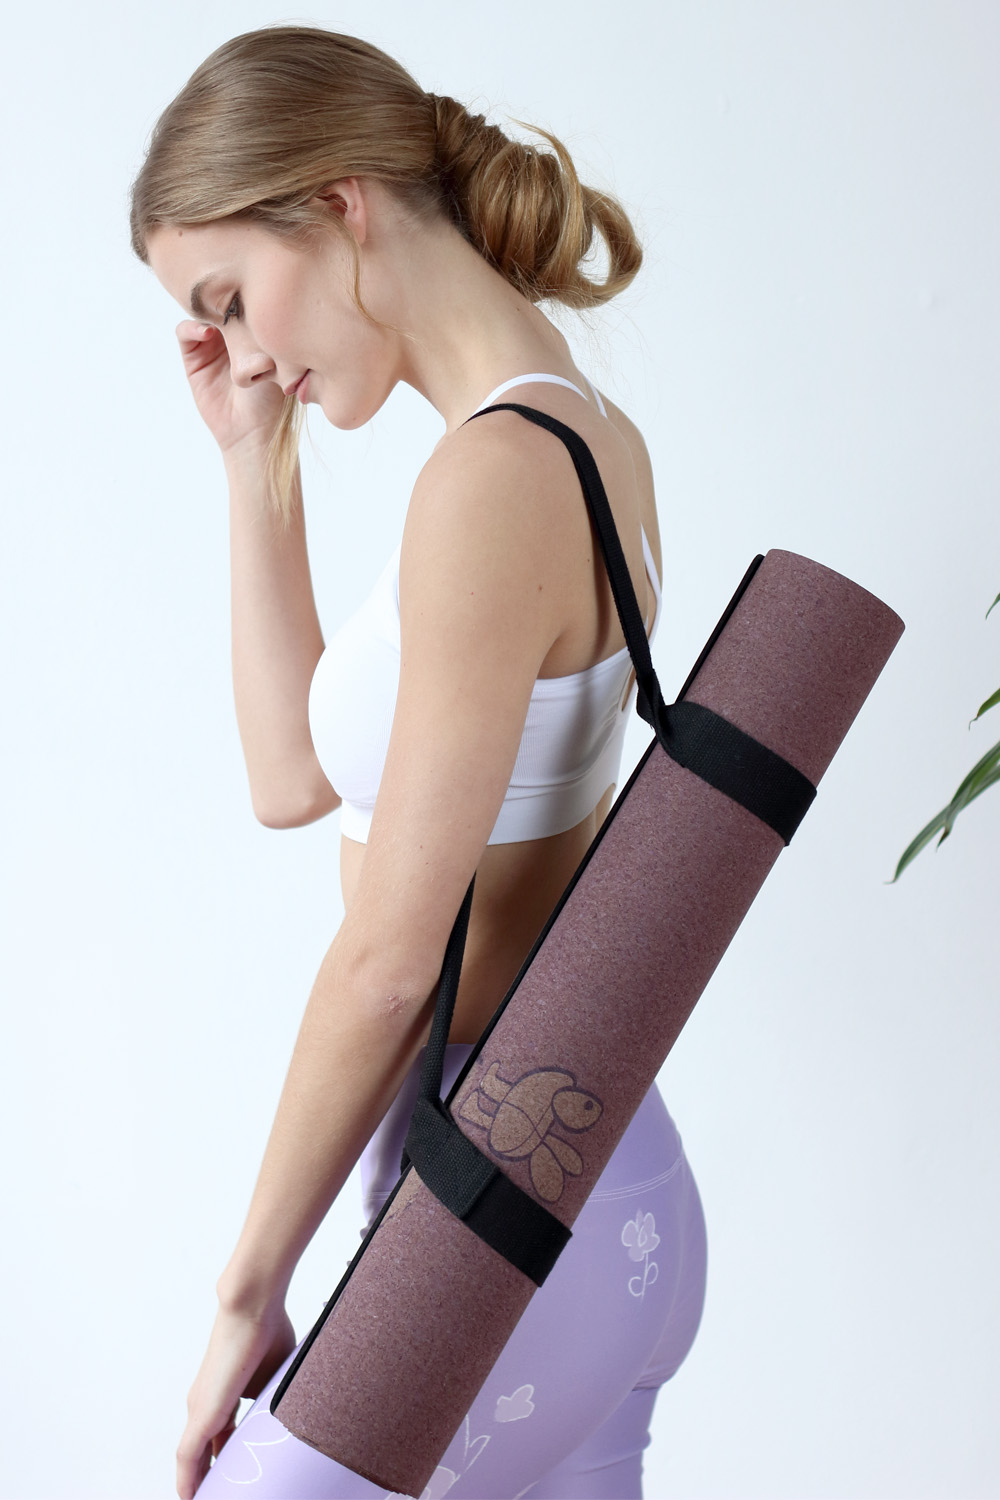 Scoria-LifeForce-Yoga-Mat-4-web.jpg